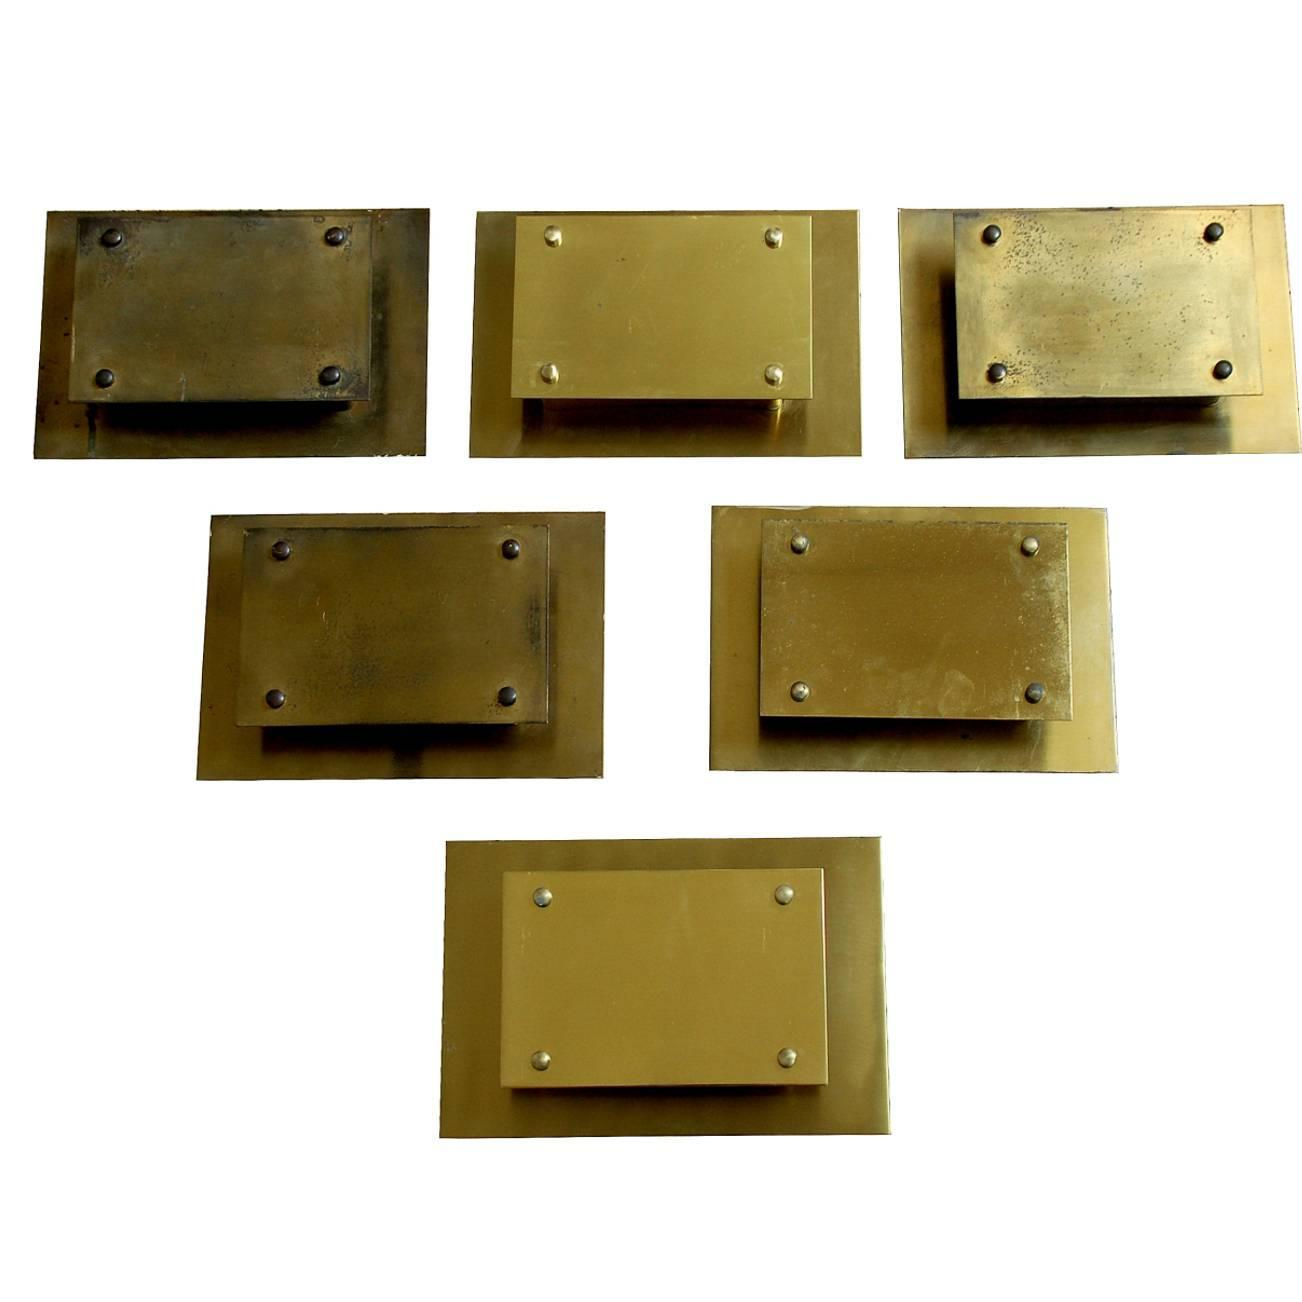 Wall Light Switch Remote Control : Modernist Rectangular Wall Lights in Solid Brass, Set of Six at 1stdibs